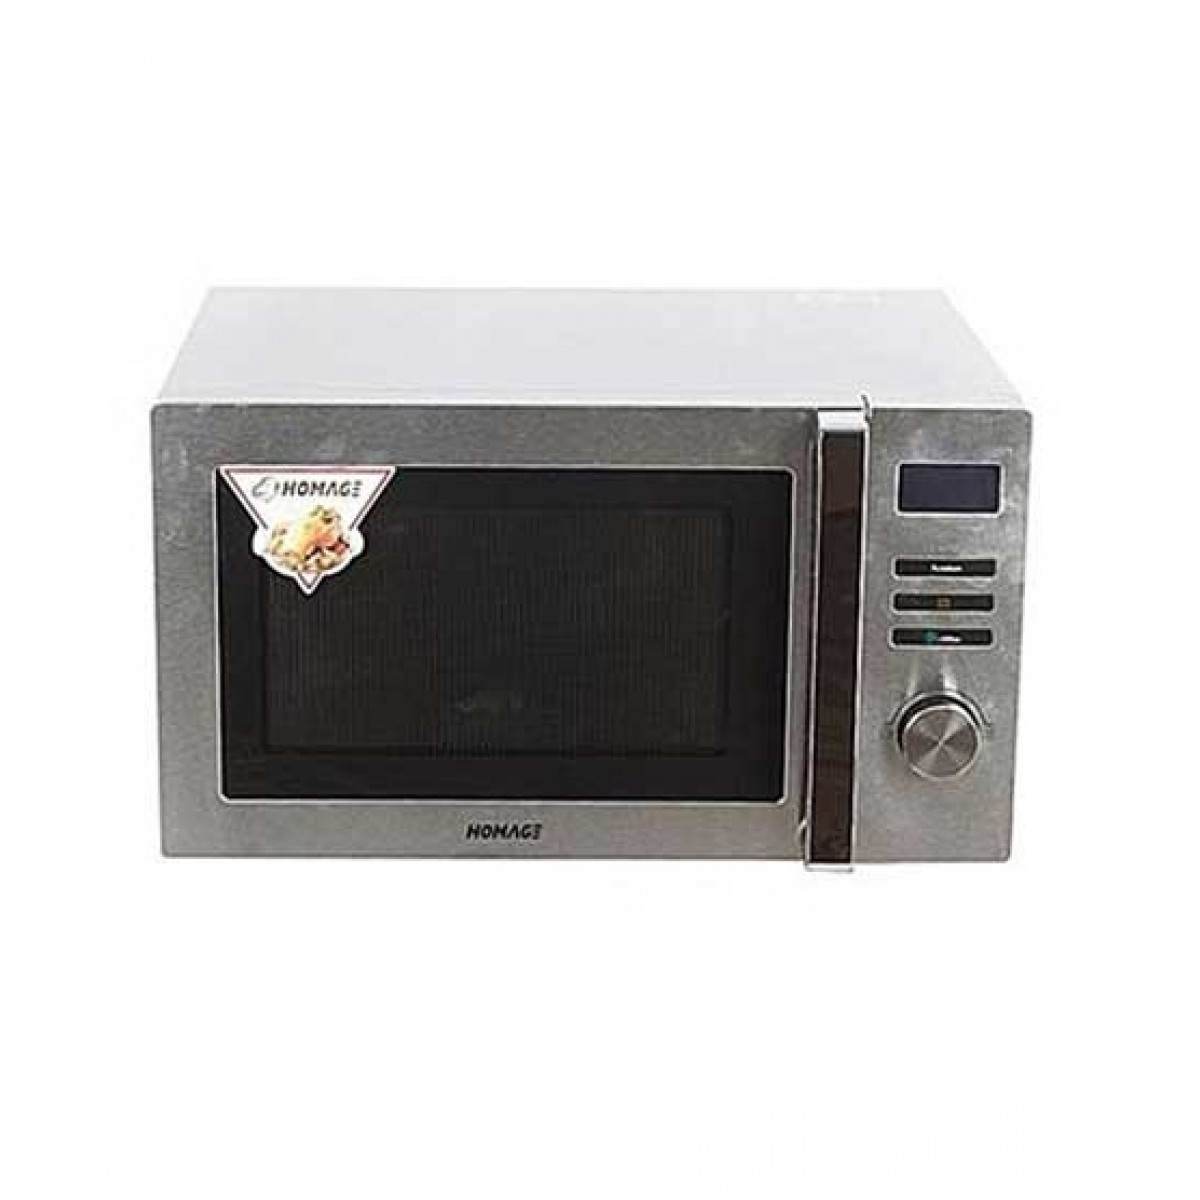 microwave oven price in pakistan